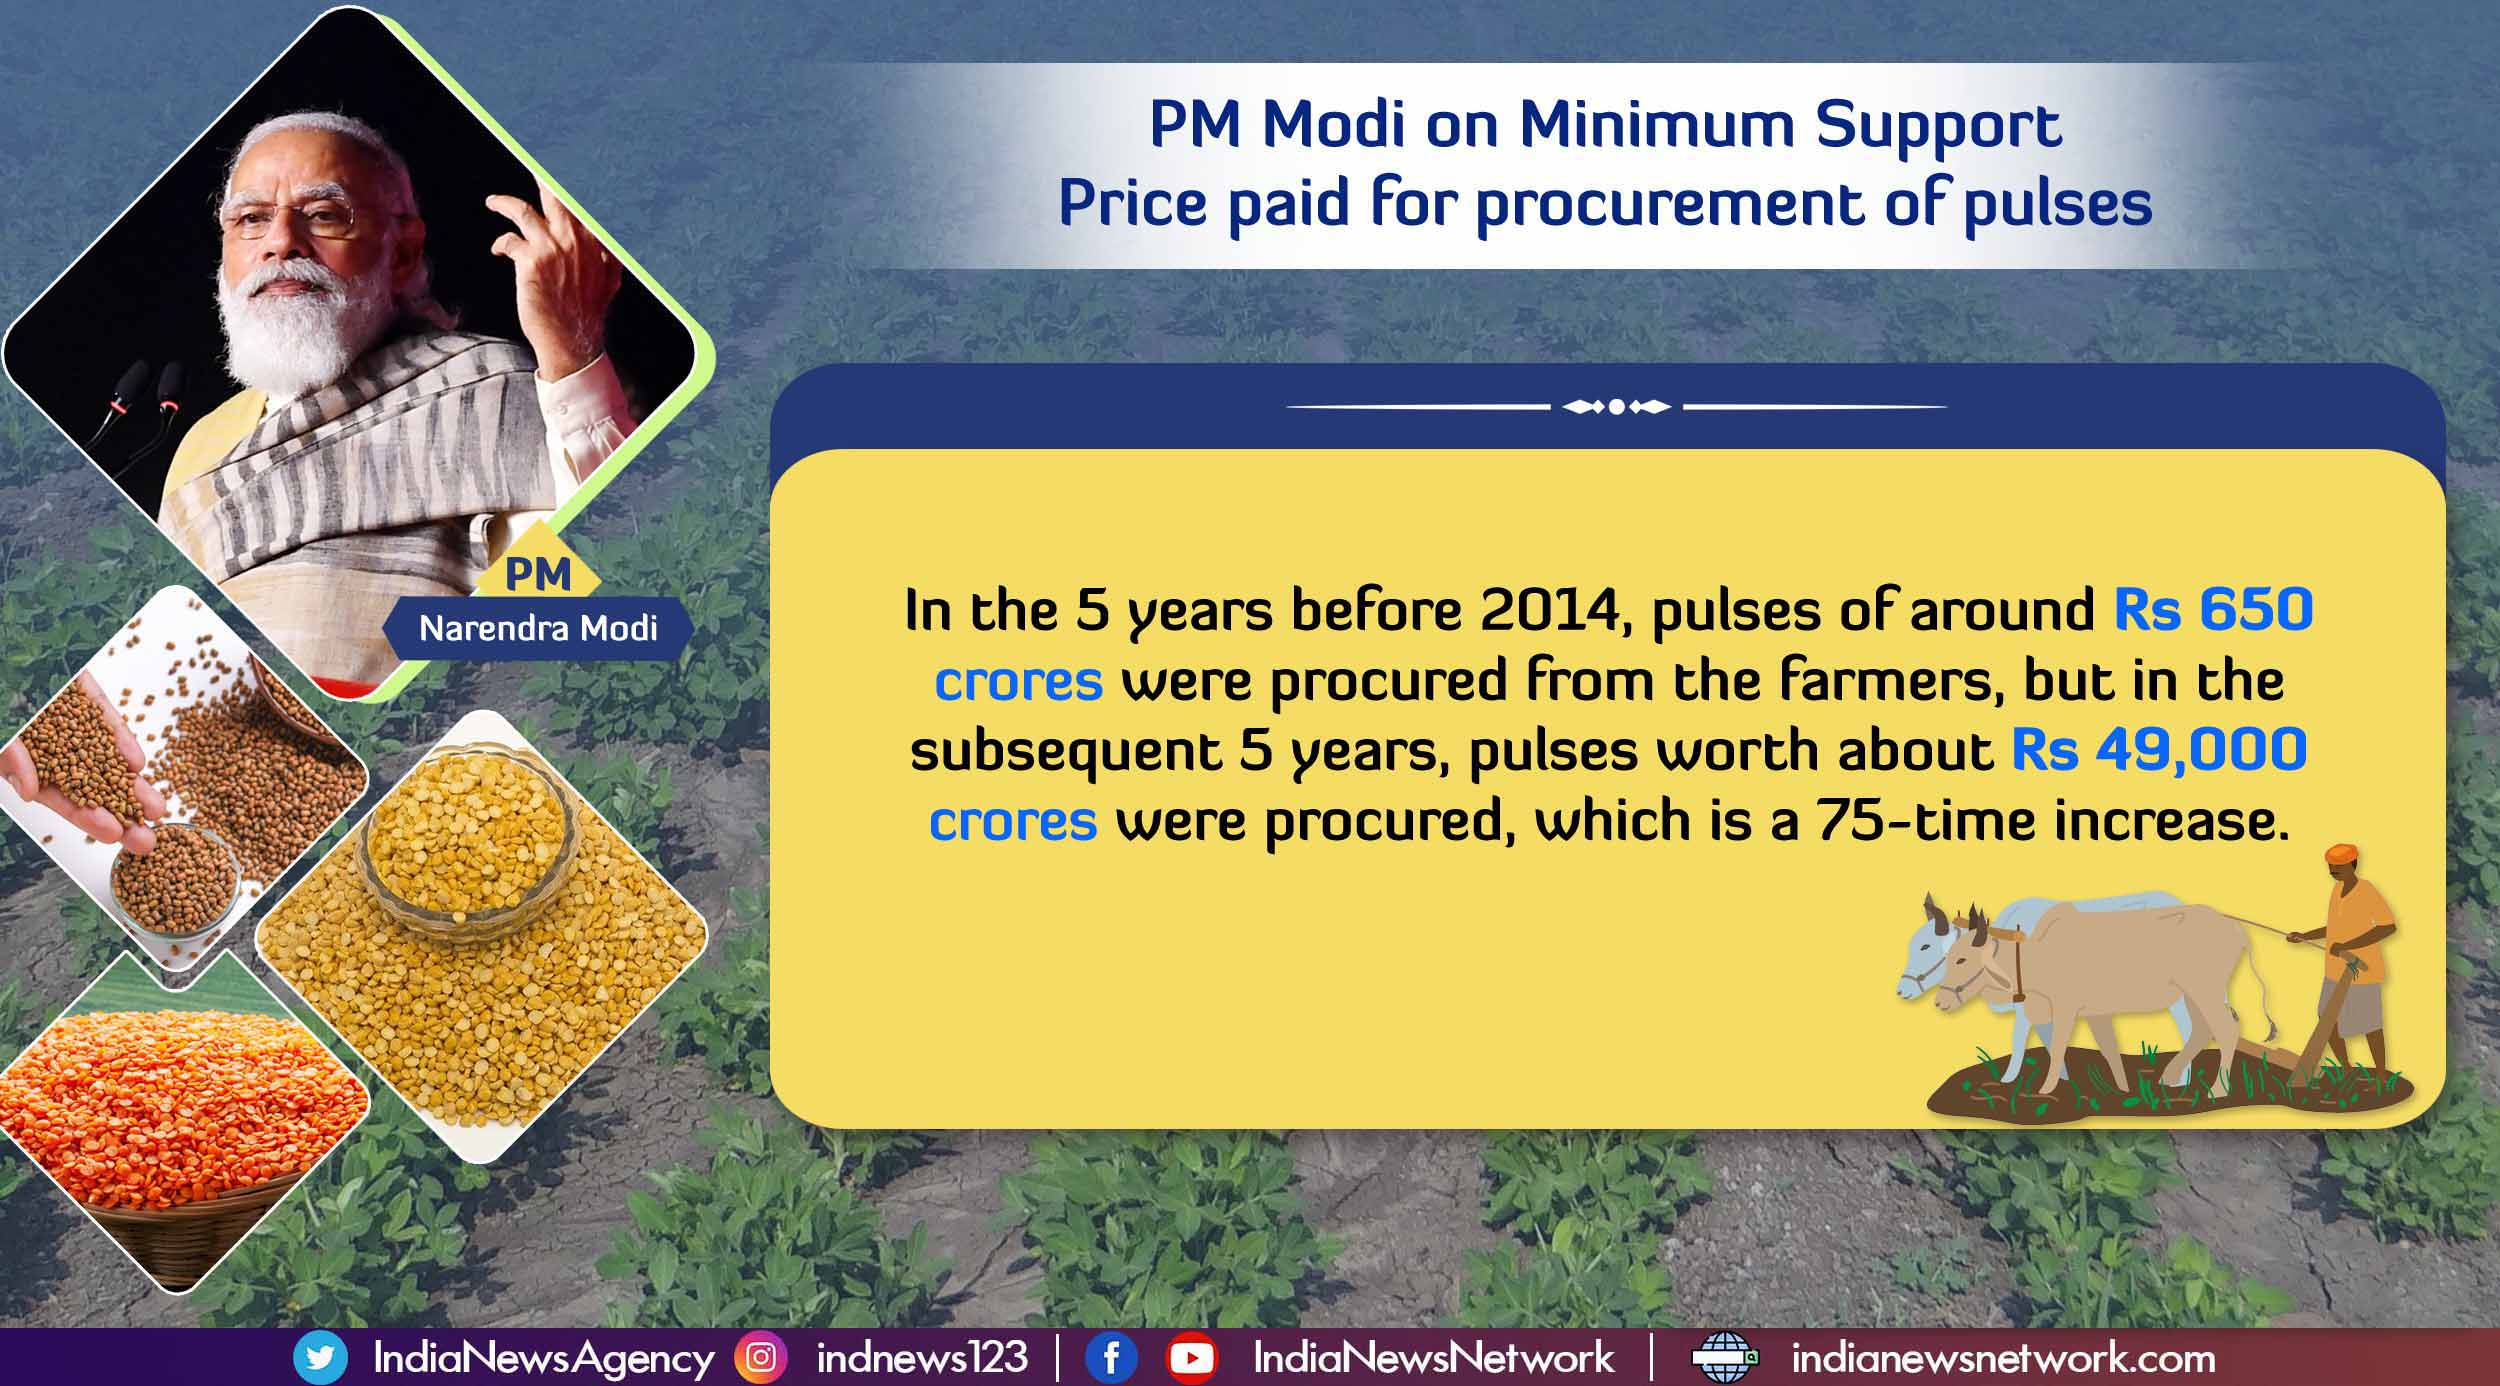 PM Modi clears the air on MSP paid to farmers for agricultural produce